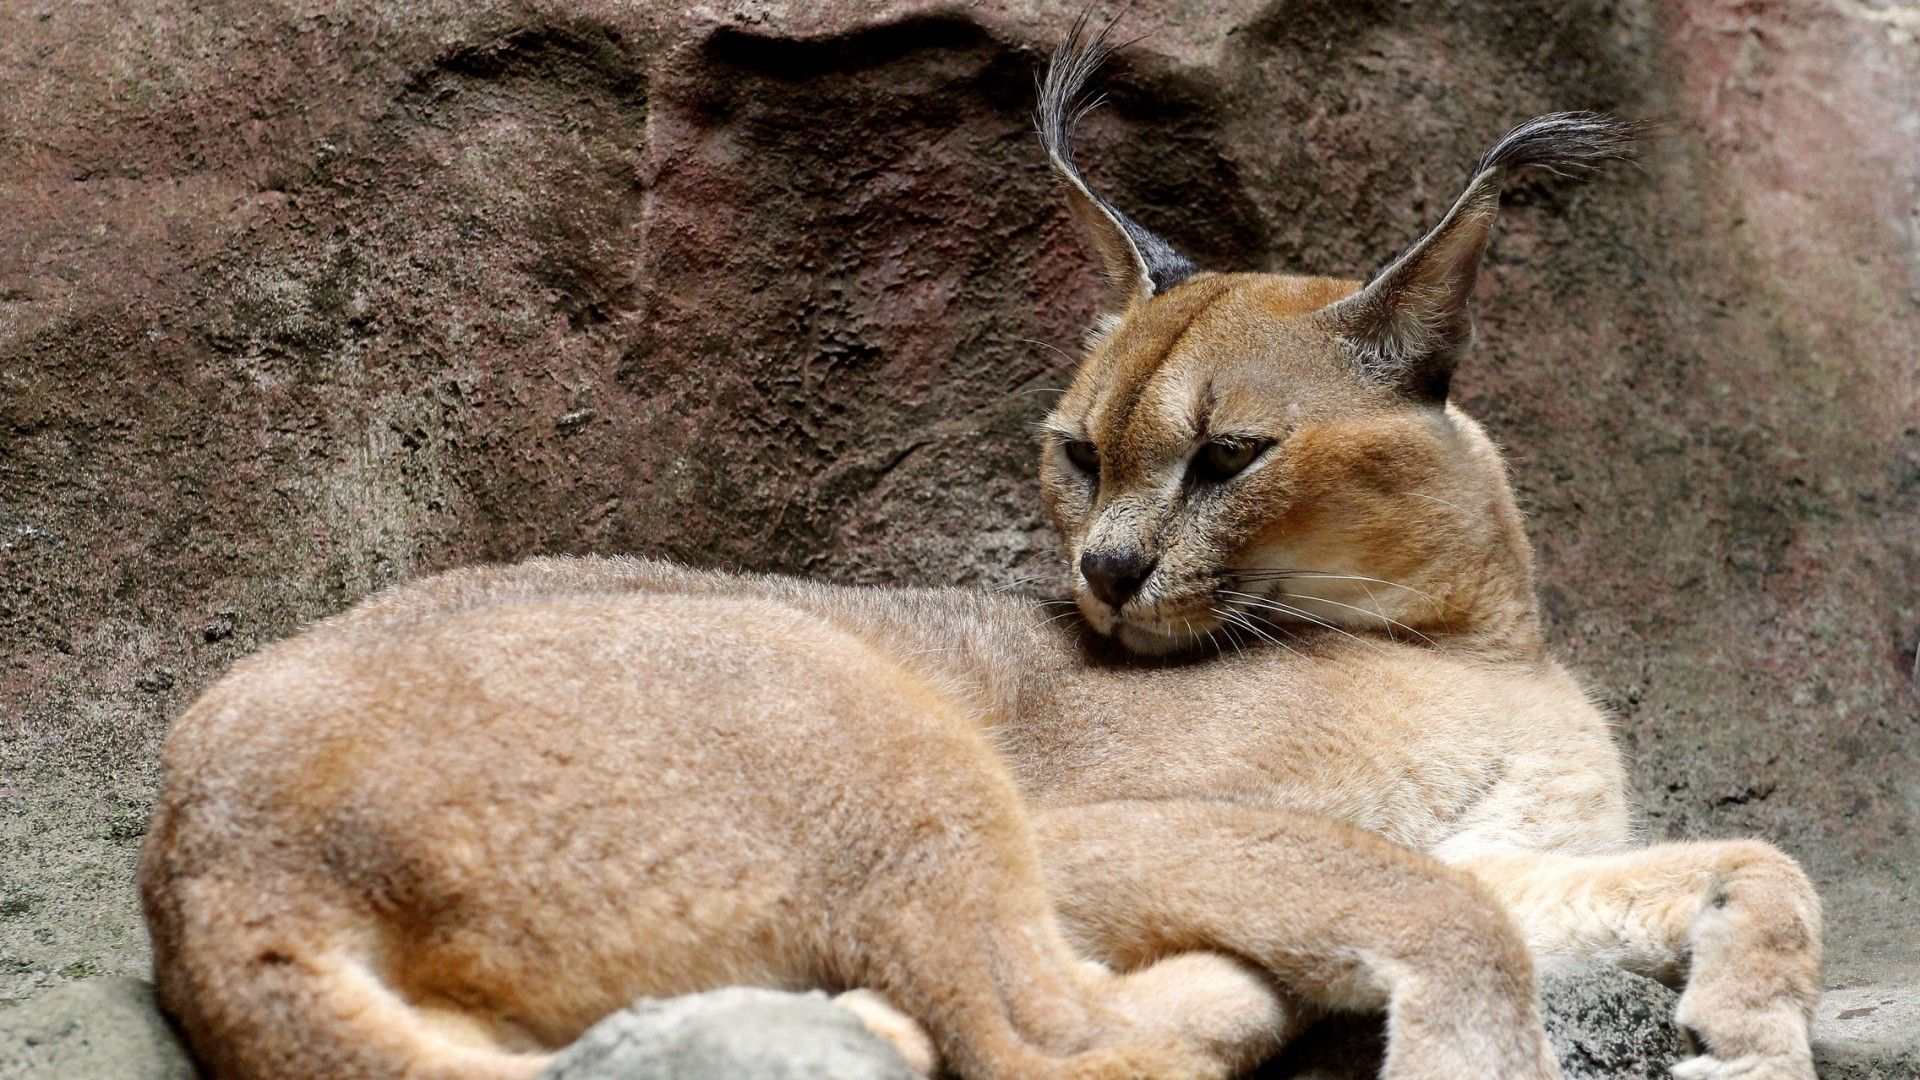 Caracals Caracal kittens, Animals wild, Wild cats